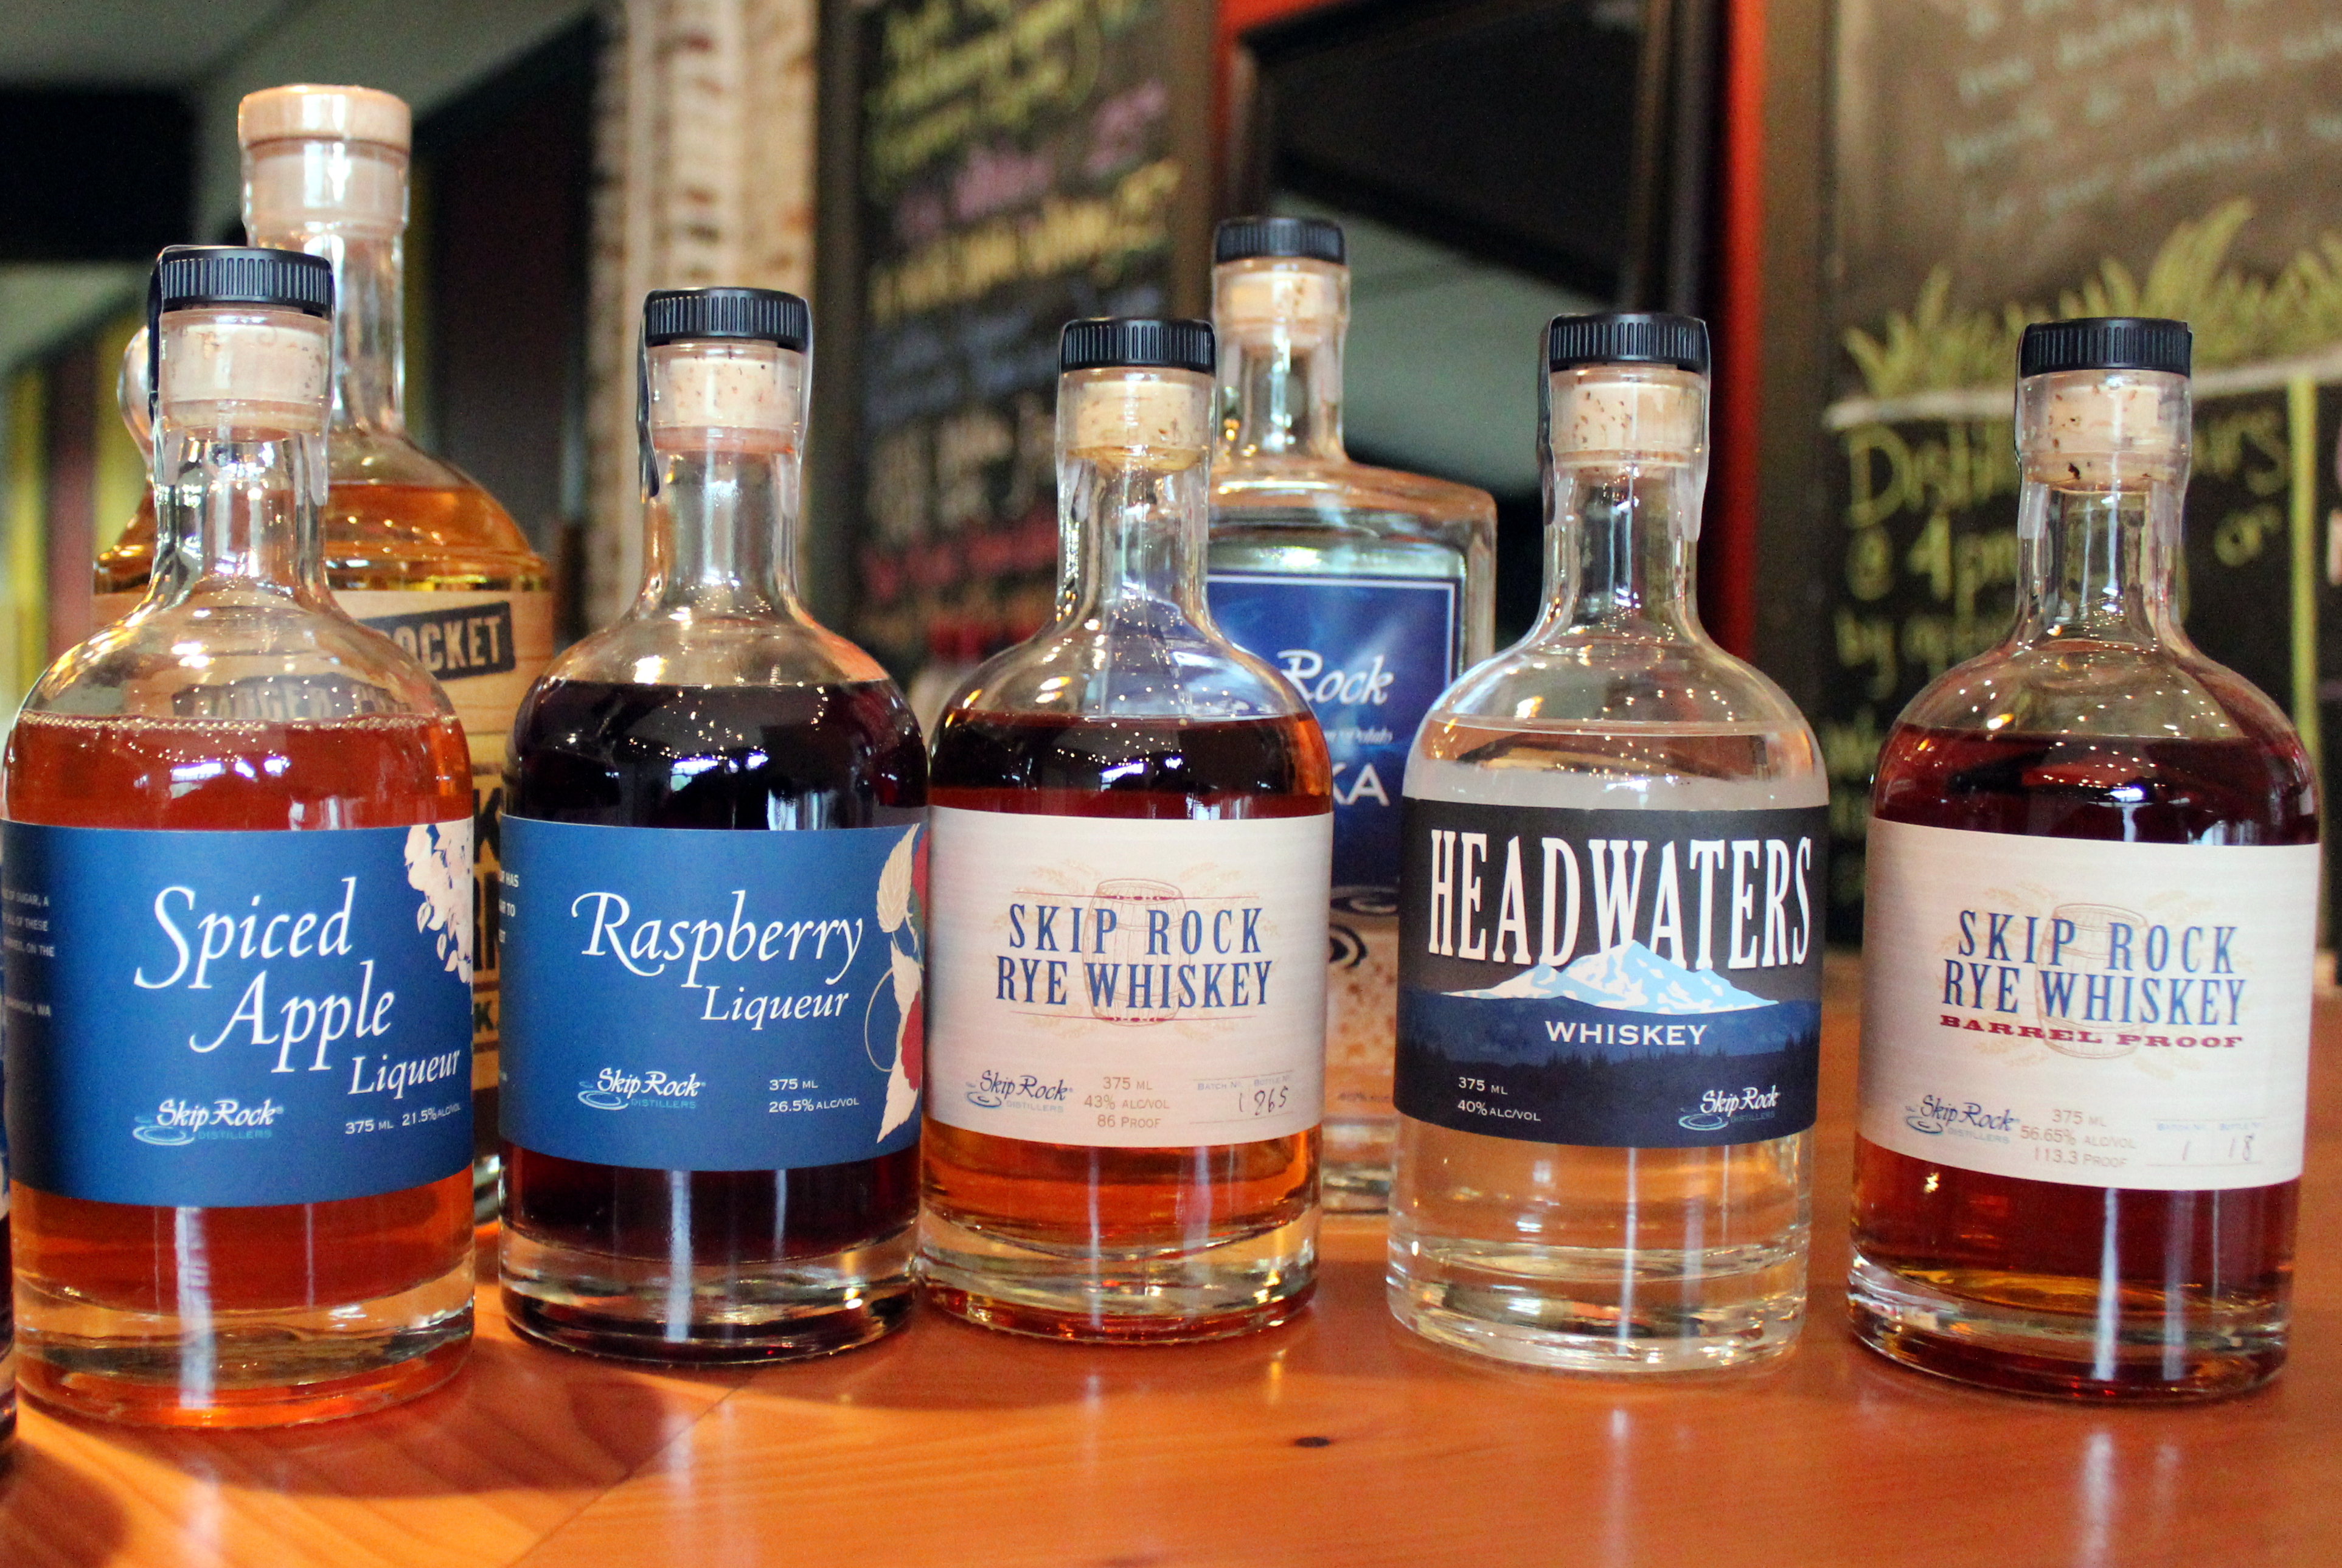 Skip Rock Distillers Products photo by Carrie Uffindell